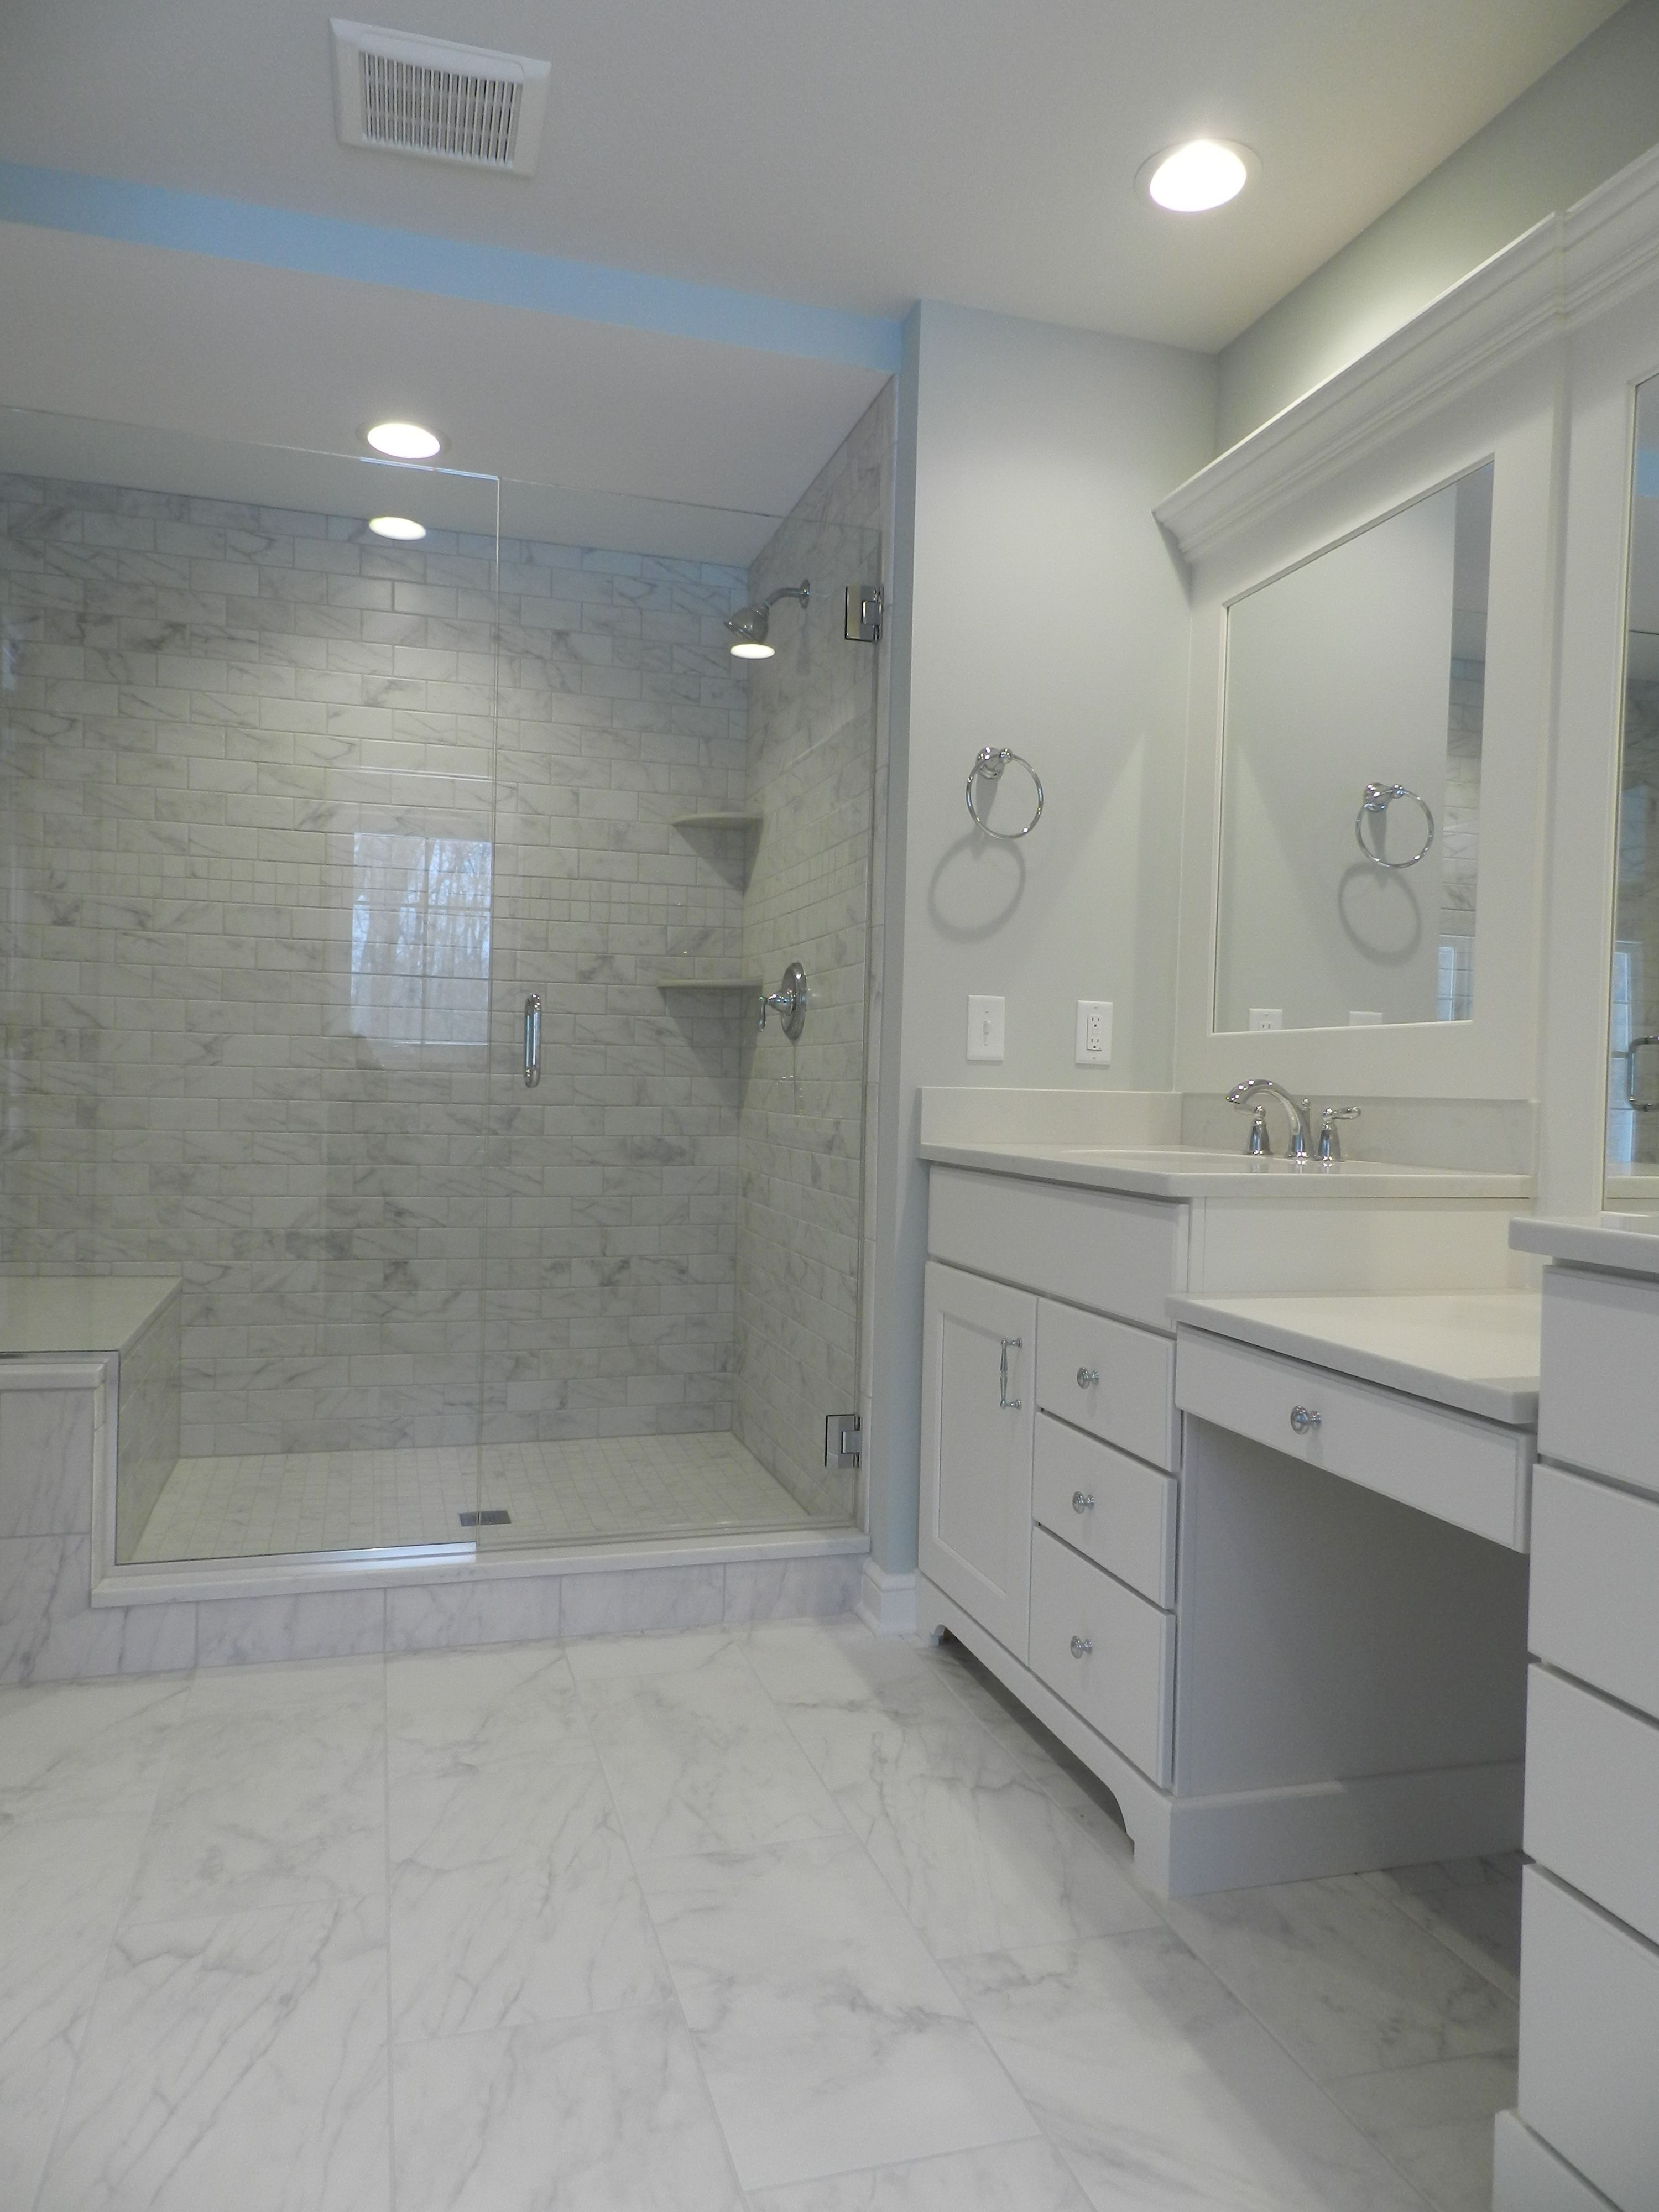 Bathroom featured in the Austin C2 By Classic Homes in Akron, OH